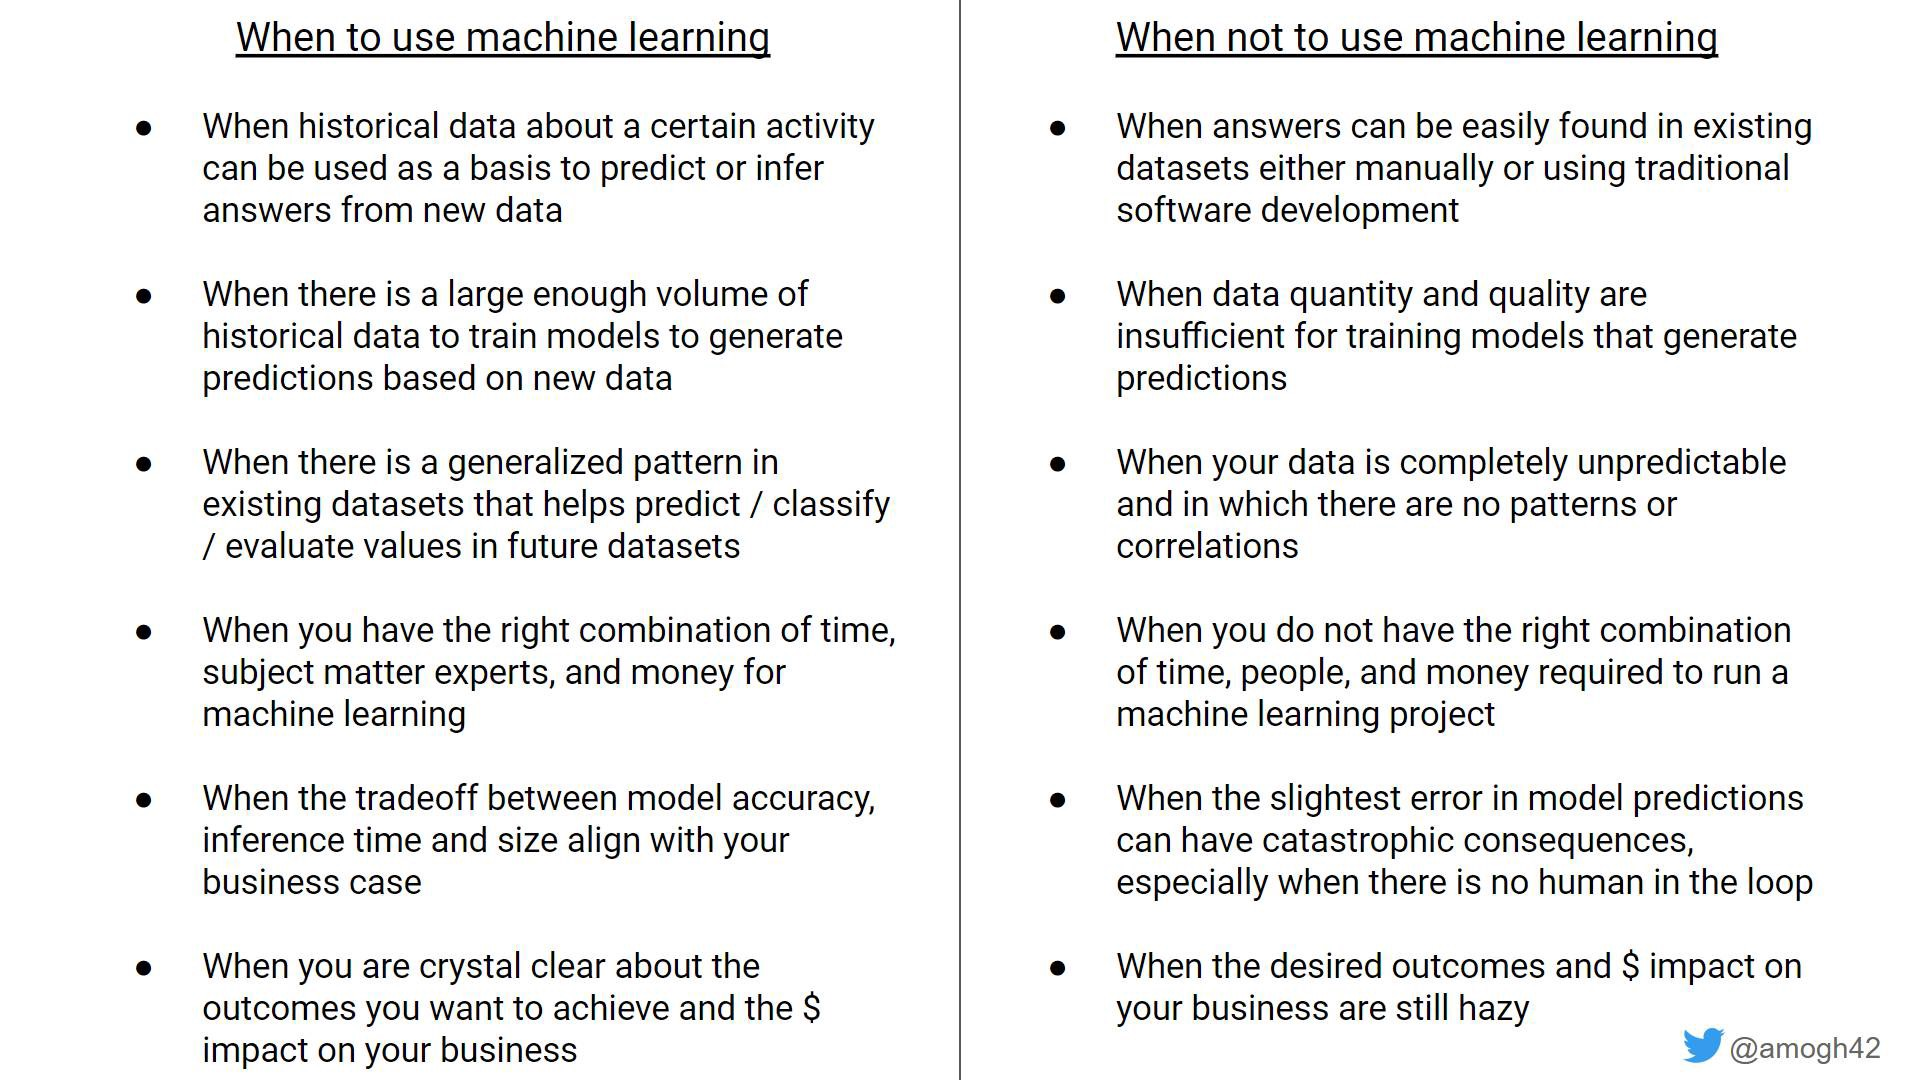 If you can check all the items on the left, you might be ready to use machine learning in your product